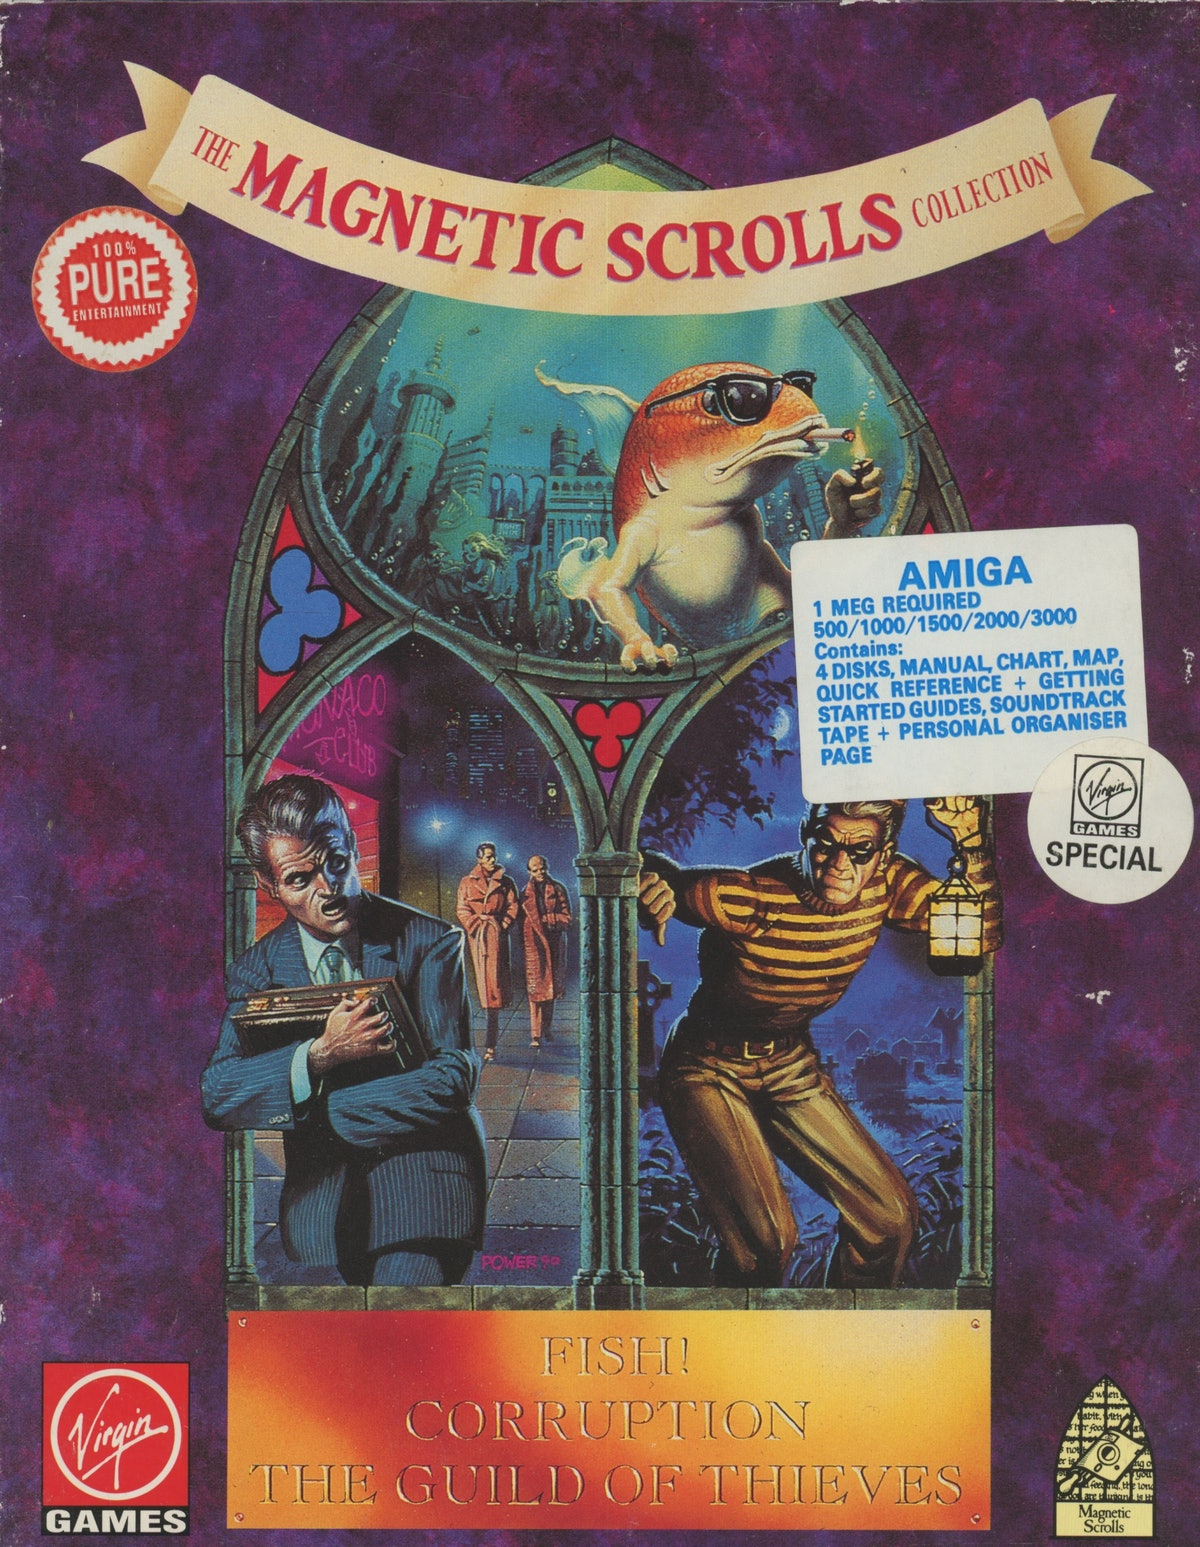 The Magnetic Scrolls Collection (Vol. 1)